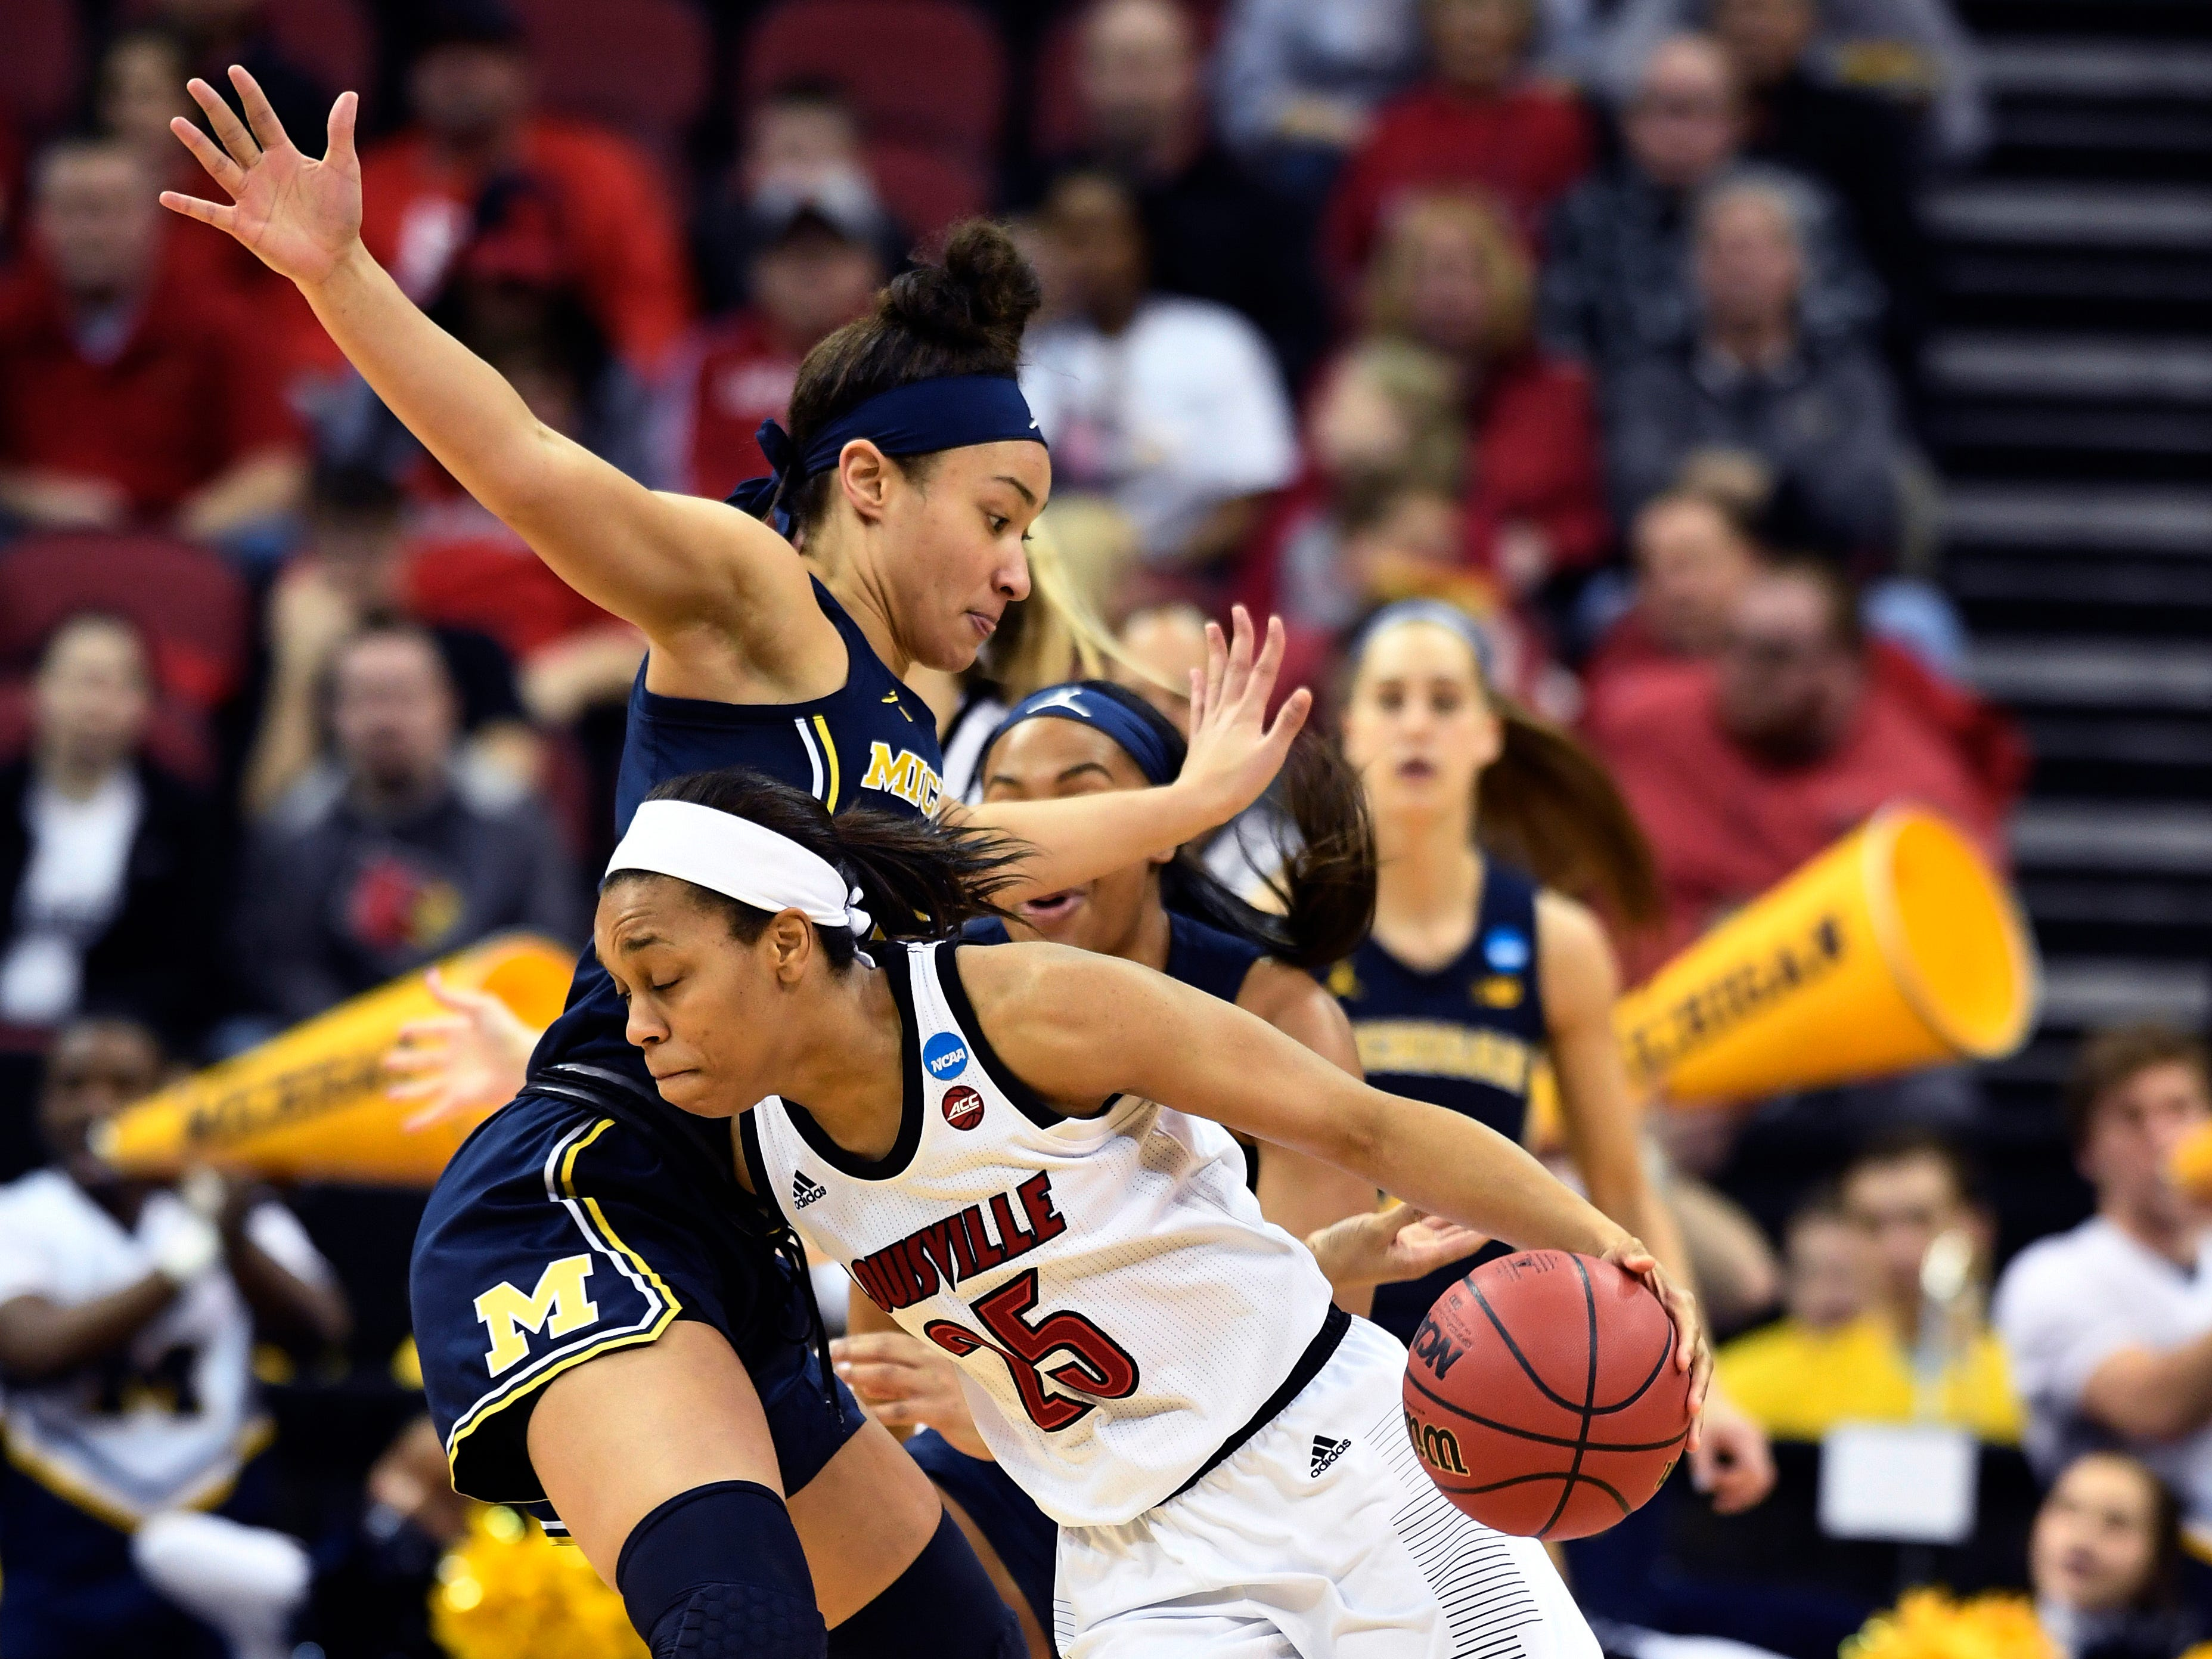 Louisville guard Asia Durr drives under the defense of Michigan forward Hailey Brown.